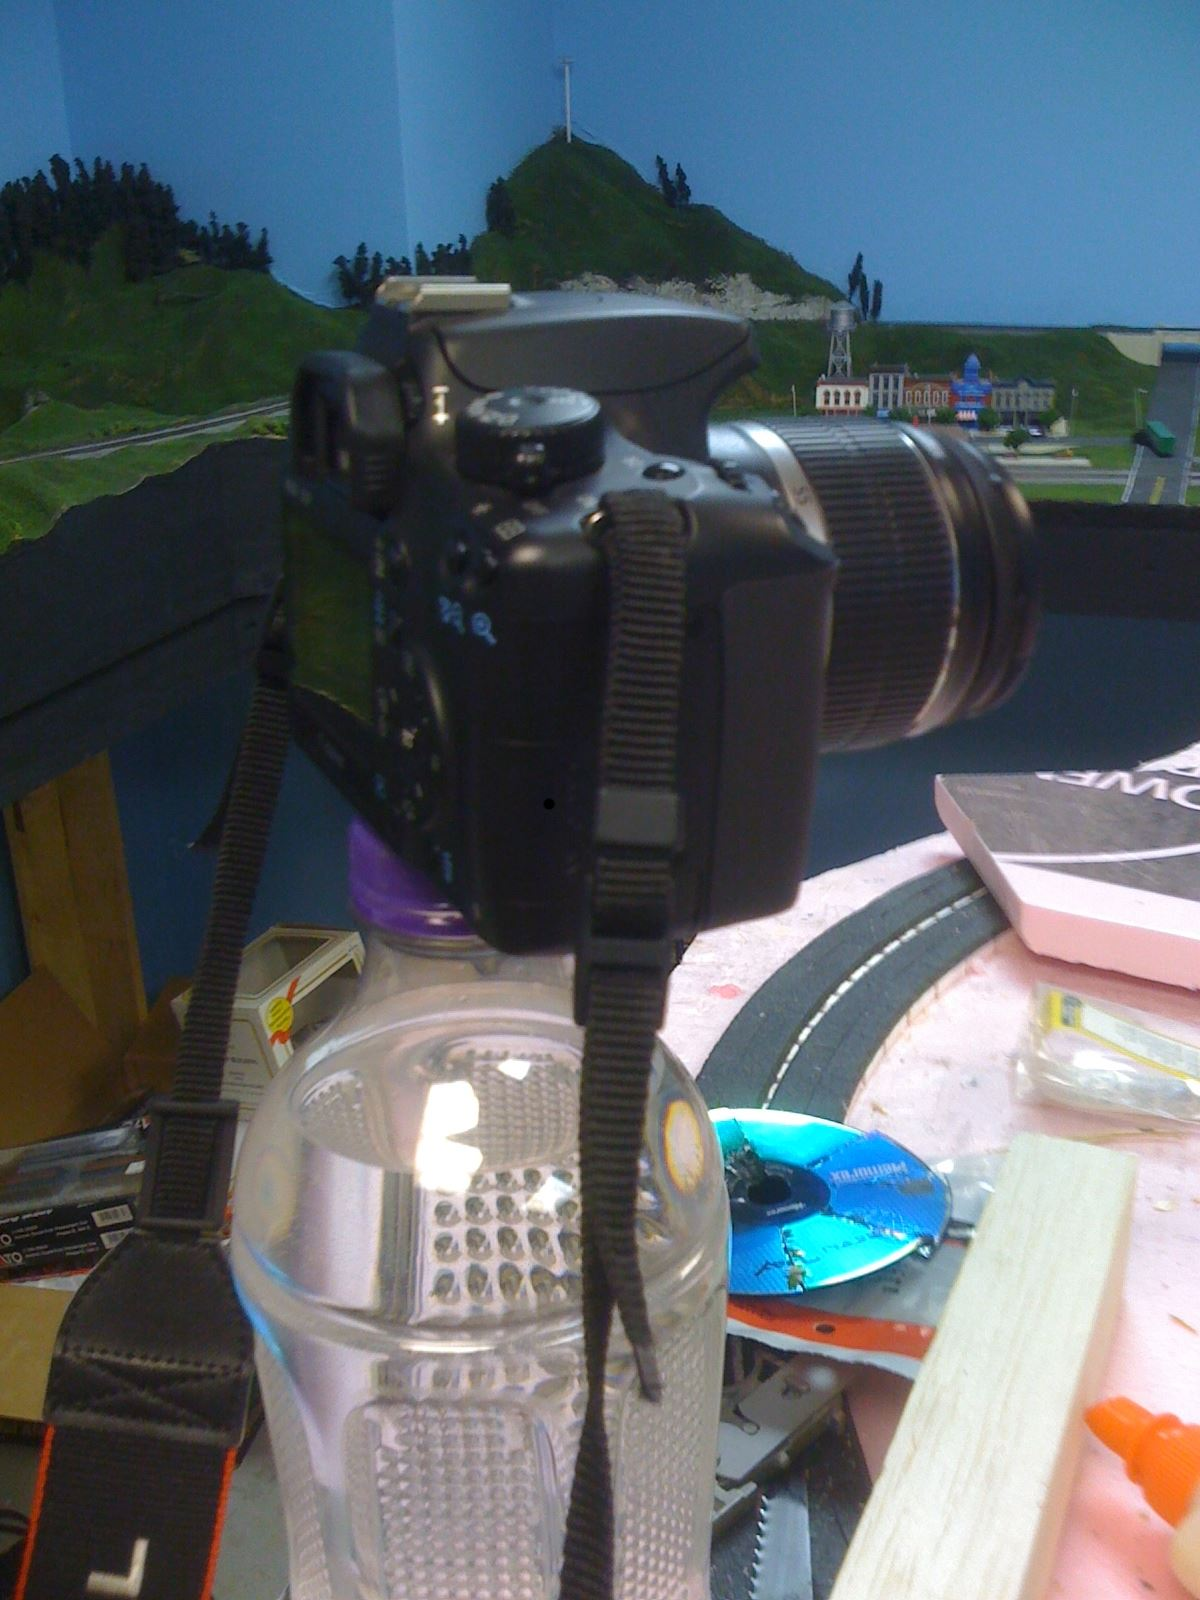 How to Make a Camera Tripod Replacement with Camera Phone Mount